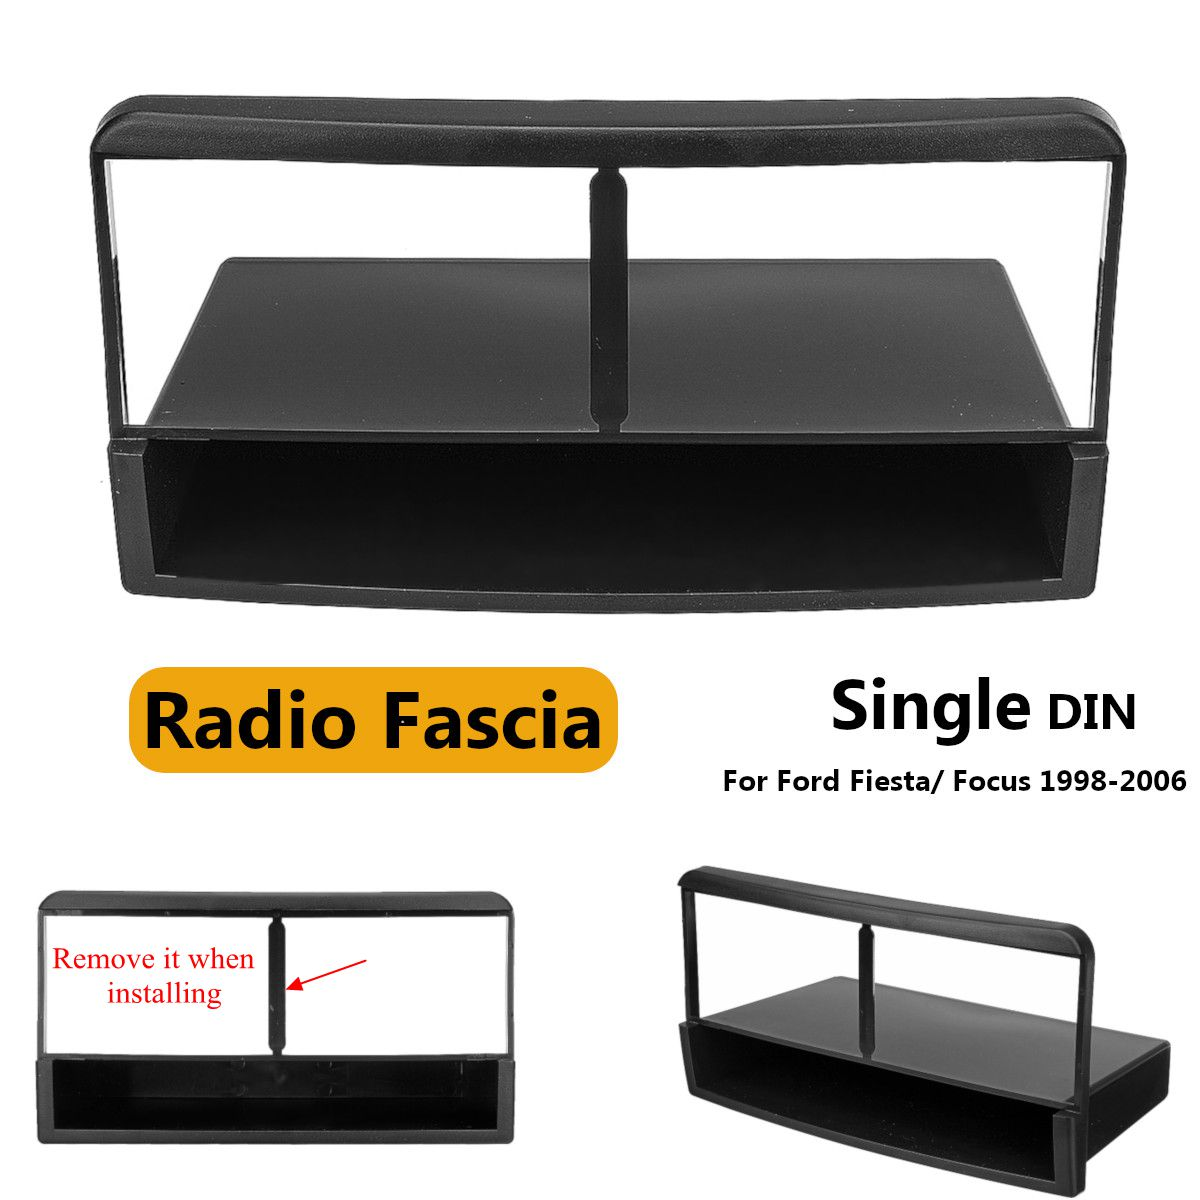 Car Stereo Radio DVD Fascia Panel Plate Frame 1 Din Panel Audio Dash Mount Interior Trim for Ford for Fiesta for Focus 1998-2006 image